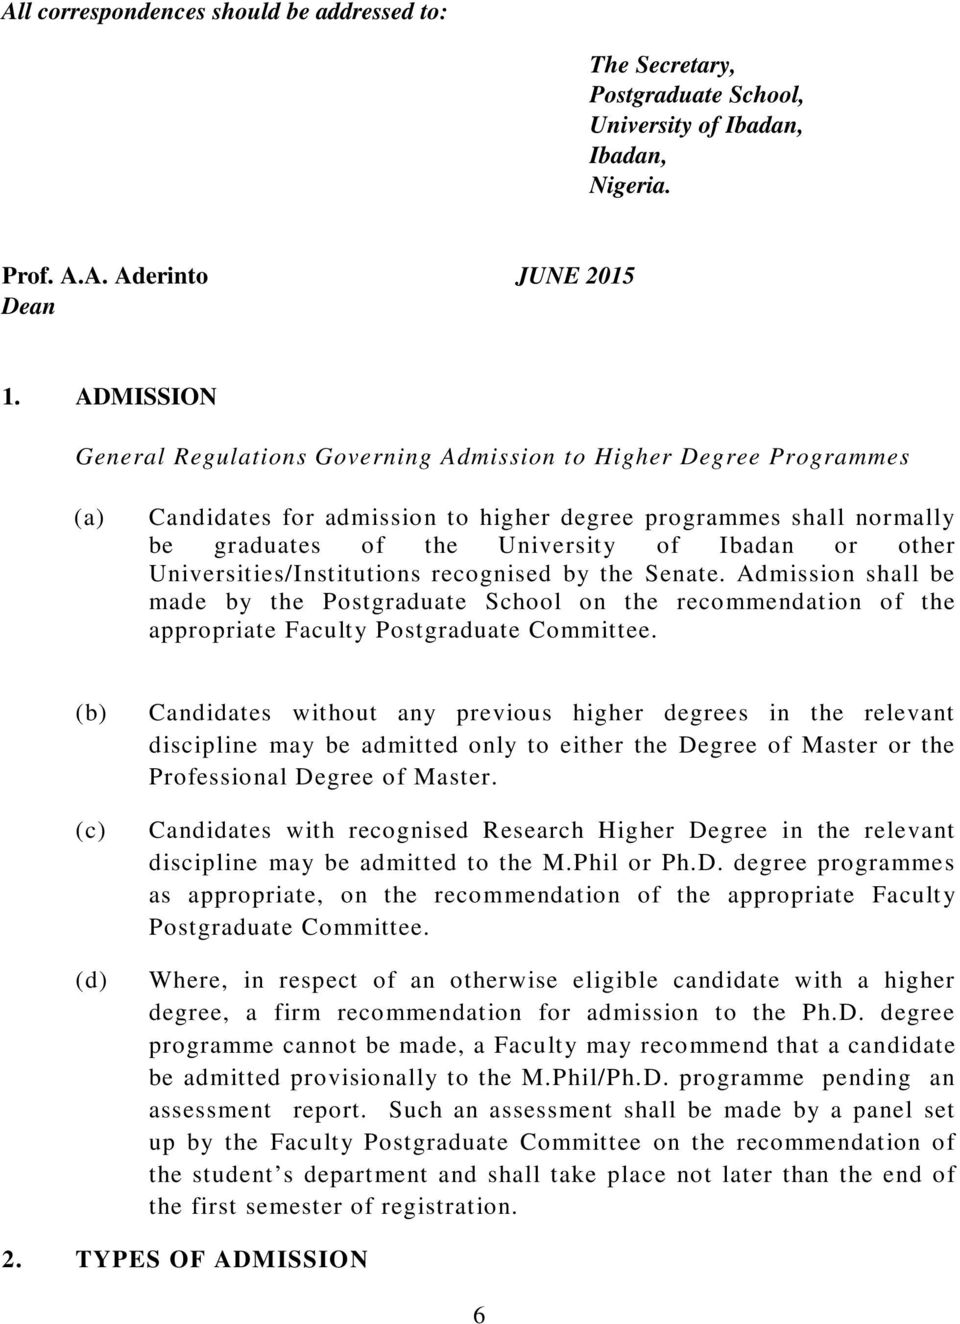 Recommendation Letter Sample For Master Degree from docplayer.net